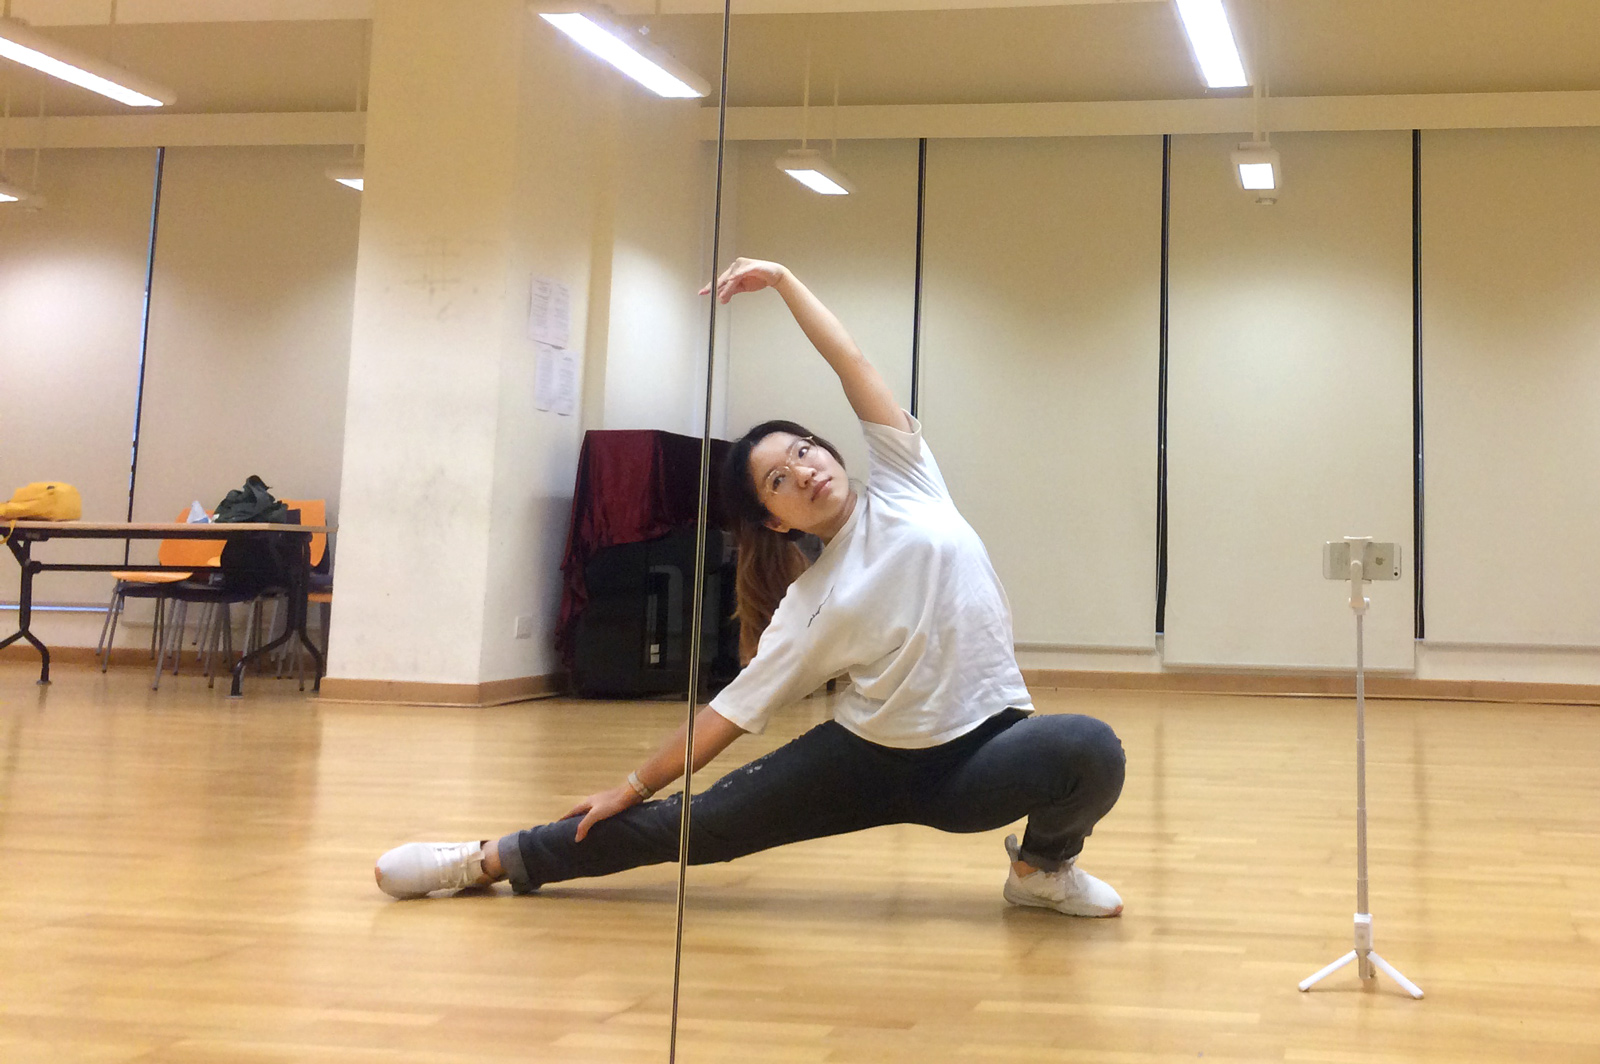 As well as her academic studies, Huang Ruini still practices dance in her spare time.